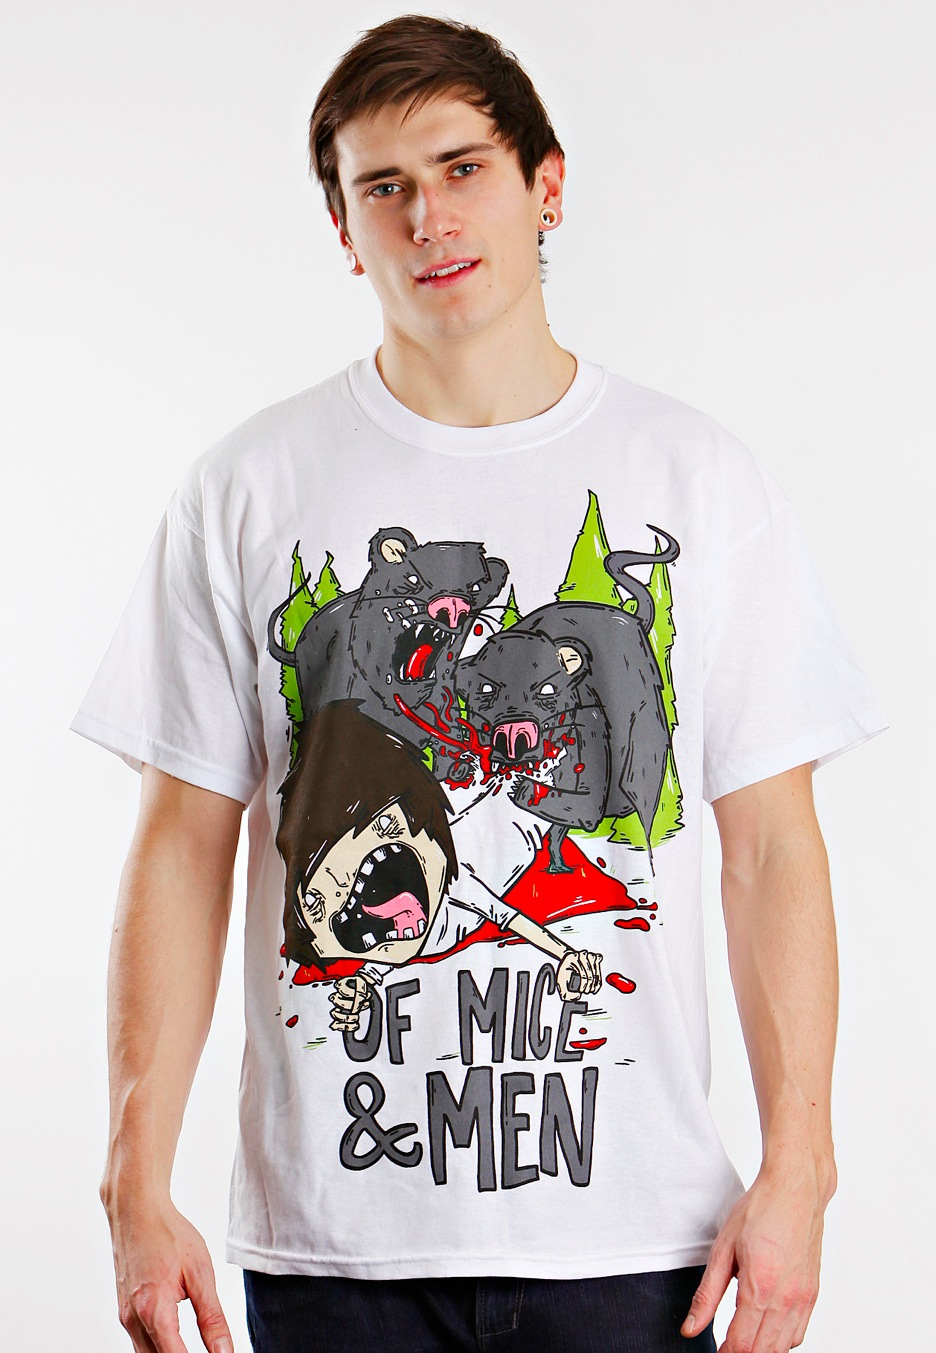 Of Mice & Men - Mice Eating Men White - T-Shirt Merch Store - Impericon.com UK